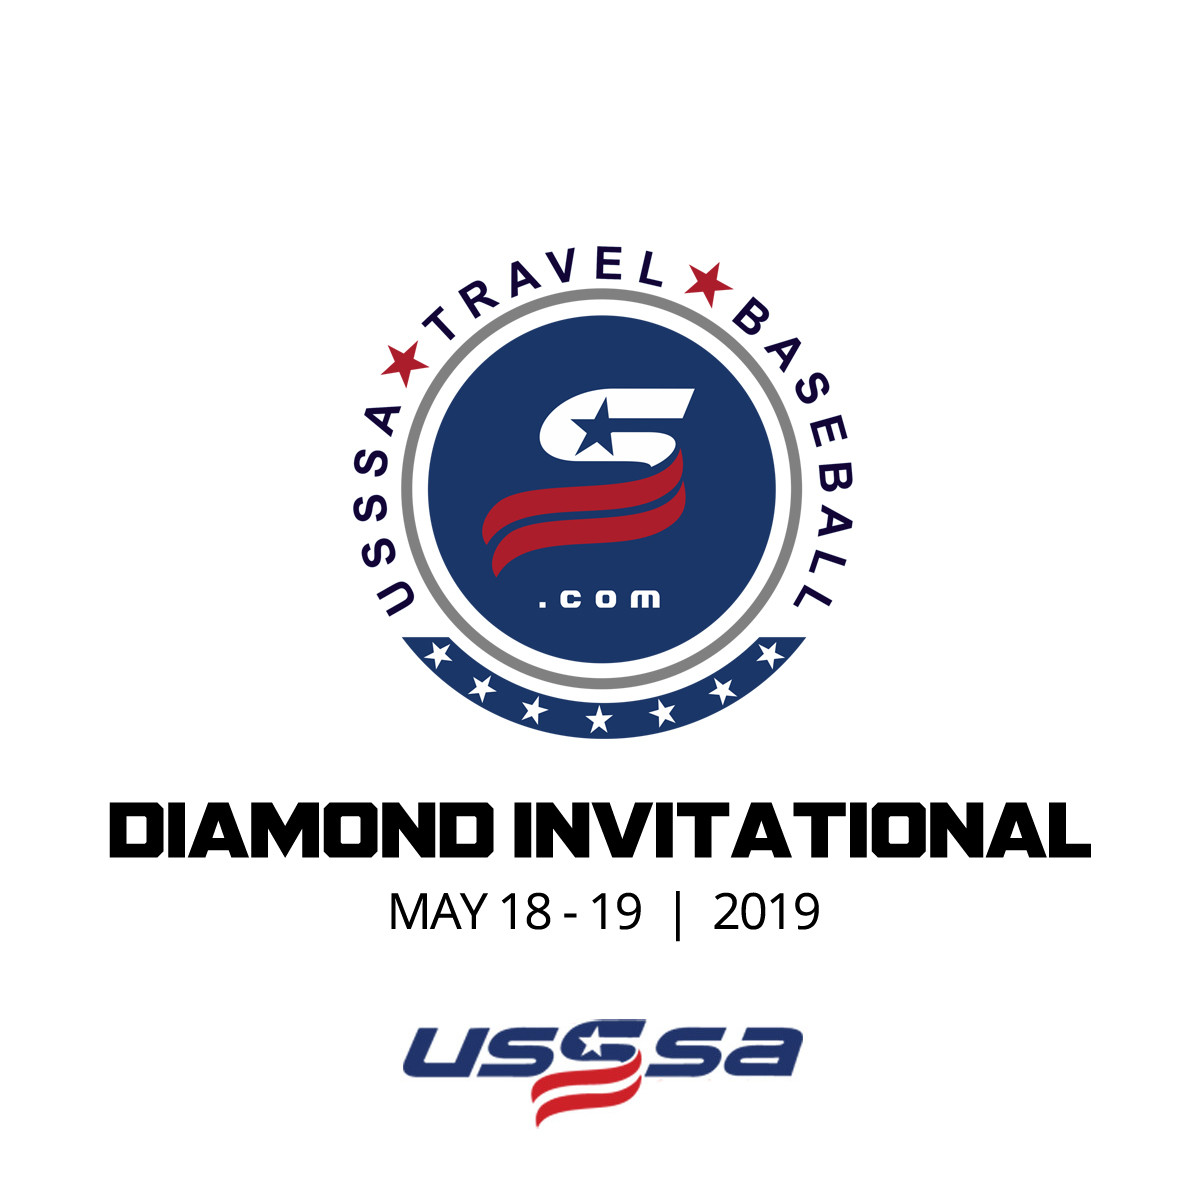 UPSTATE - DIAMOND INVITATIONAL